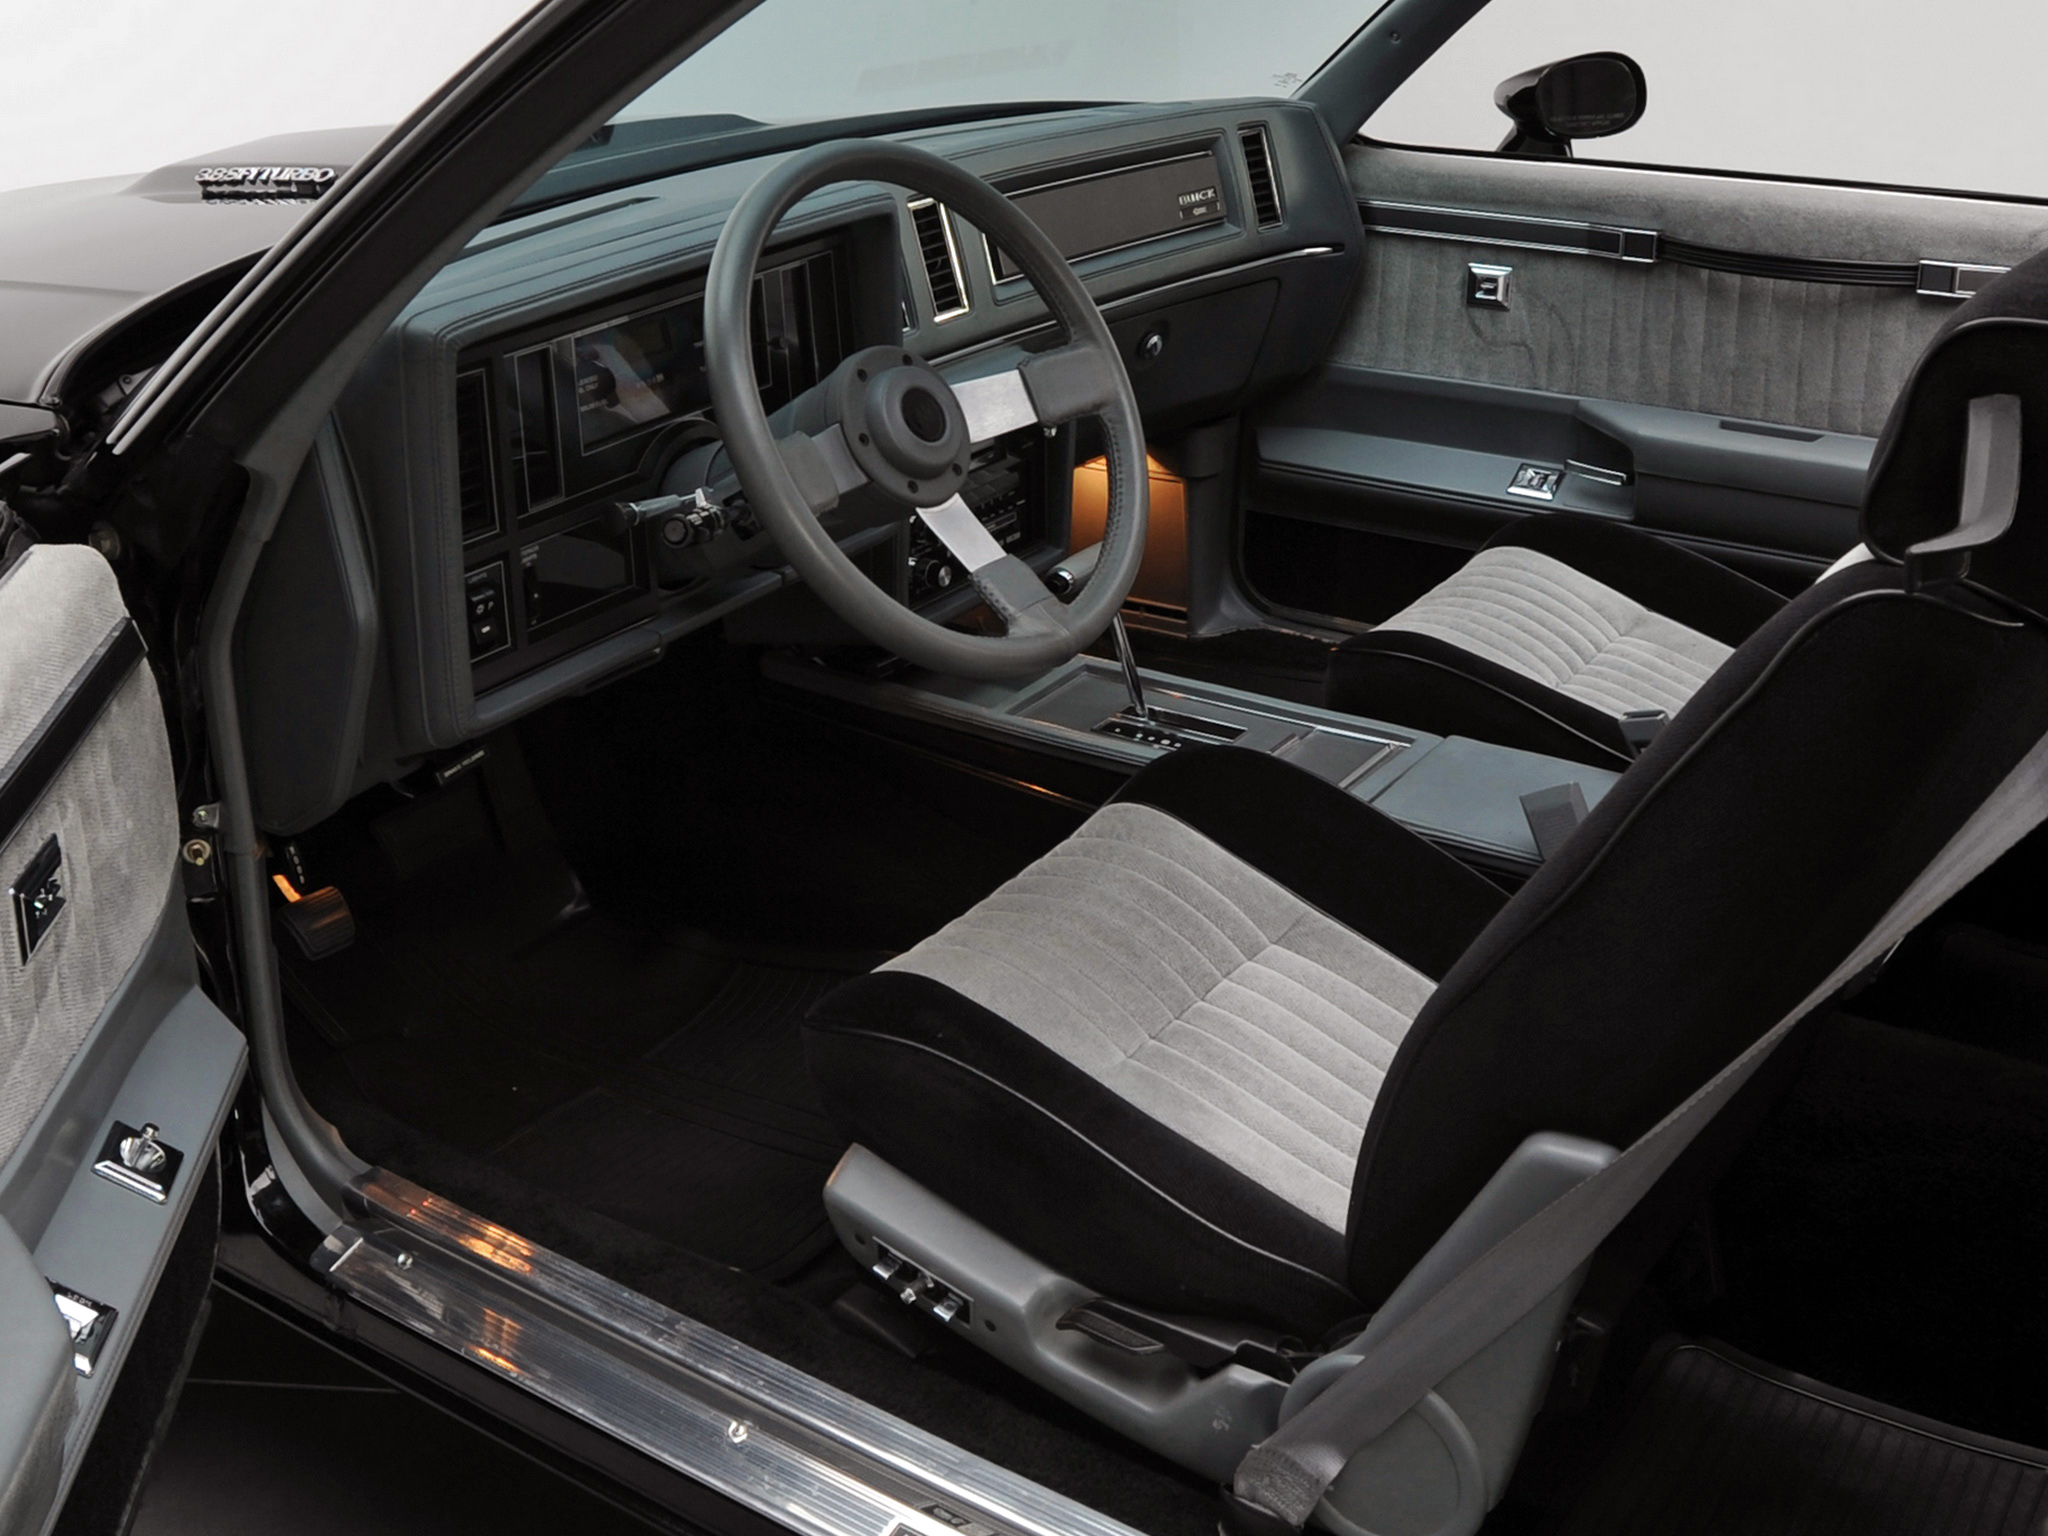 1987 buick regal grand national muscle interior h - 1987 buick grand national interior ...